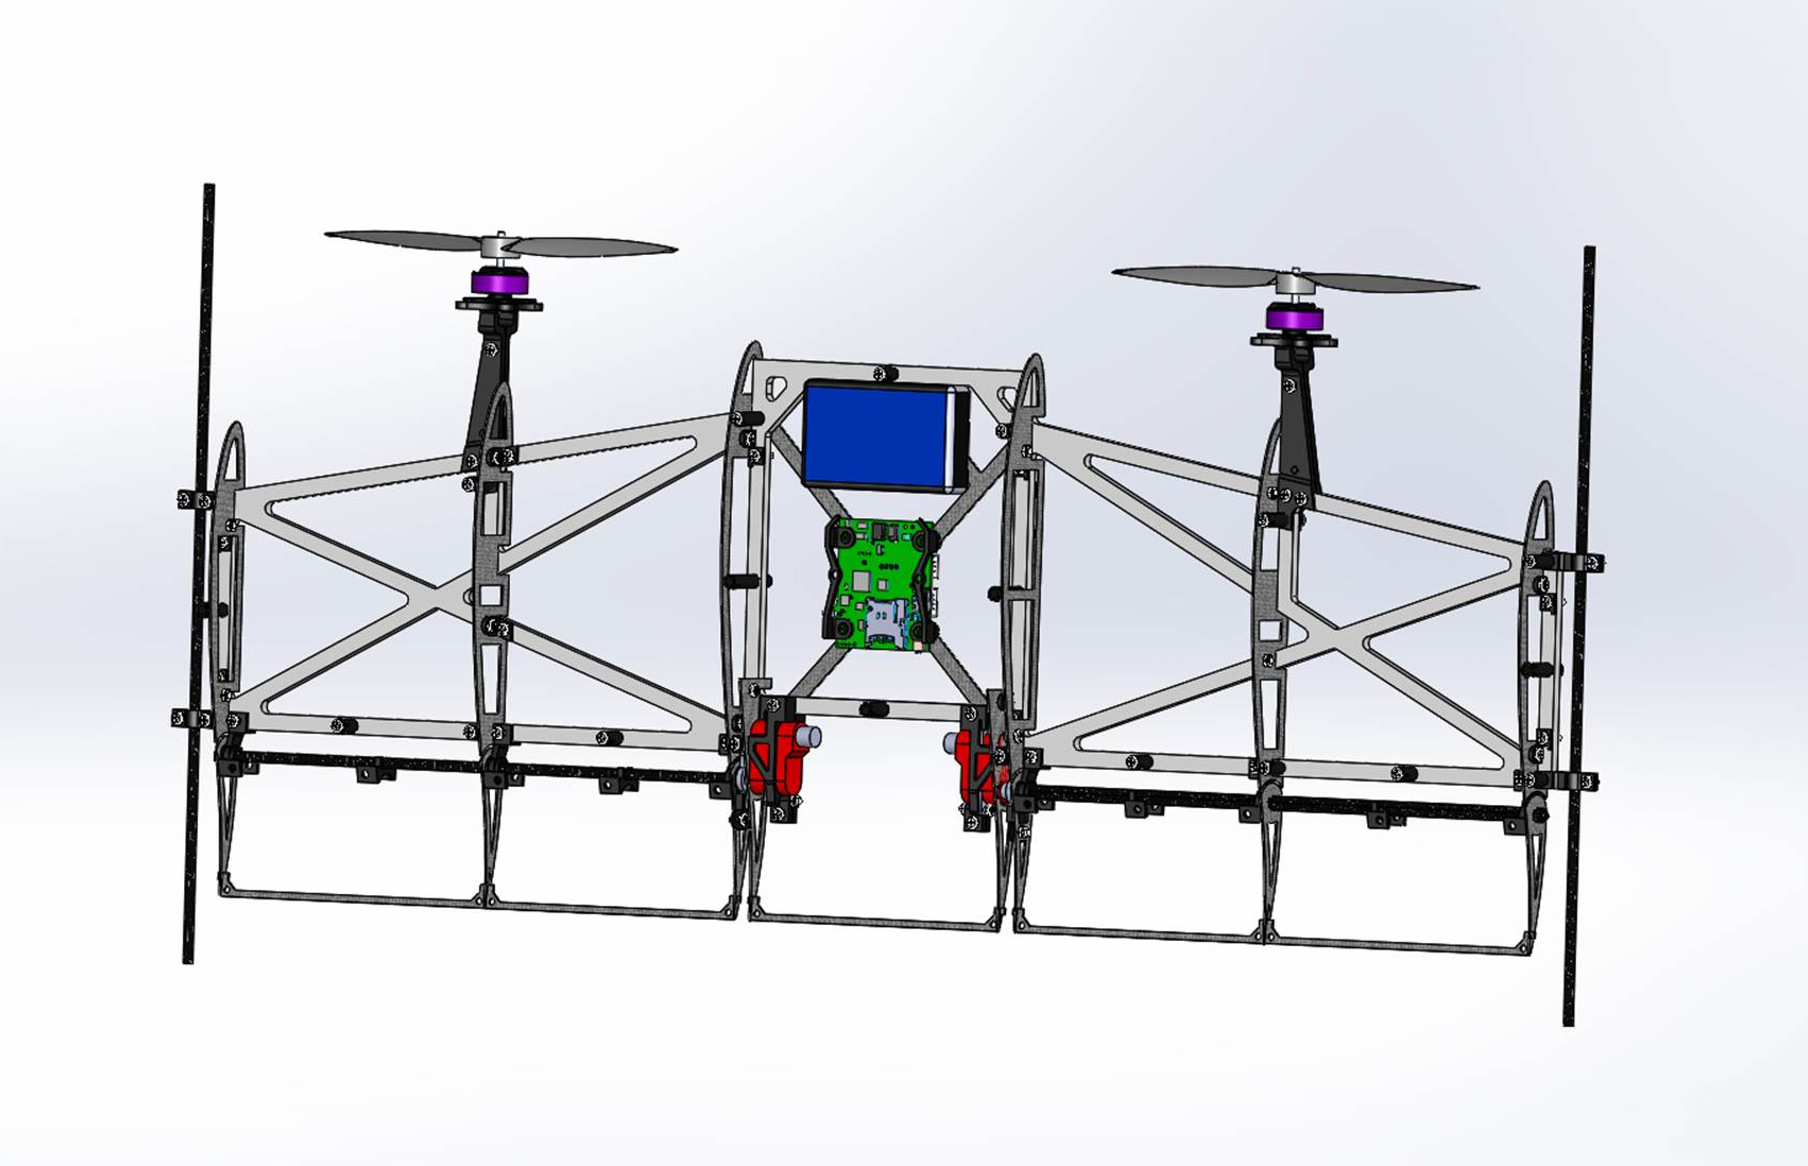 'IDSC Tailsitter' flying robot performs vertical loops and easily transitions between hover and forward flight